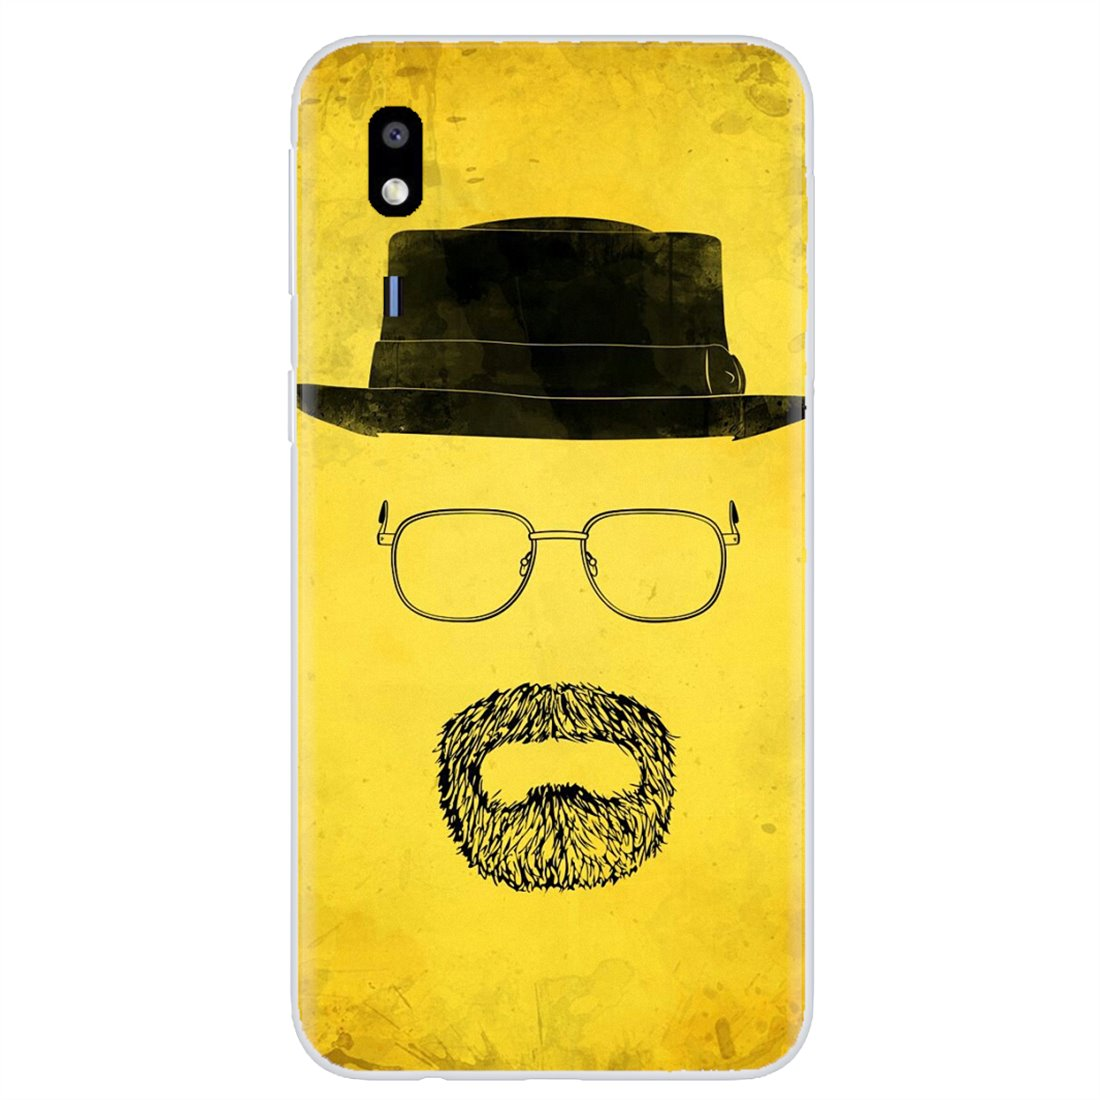 Buy Silicone Phone Case For Samsung Galaxy A10 A30 A40 A50 A60 A70 S6 Active Note 10 Plus Edge M30 Breaking Bad Chemistry Walter(China)